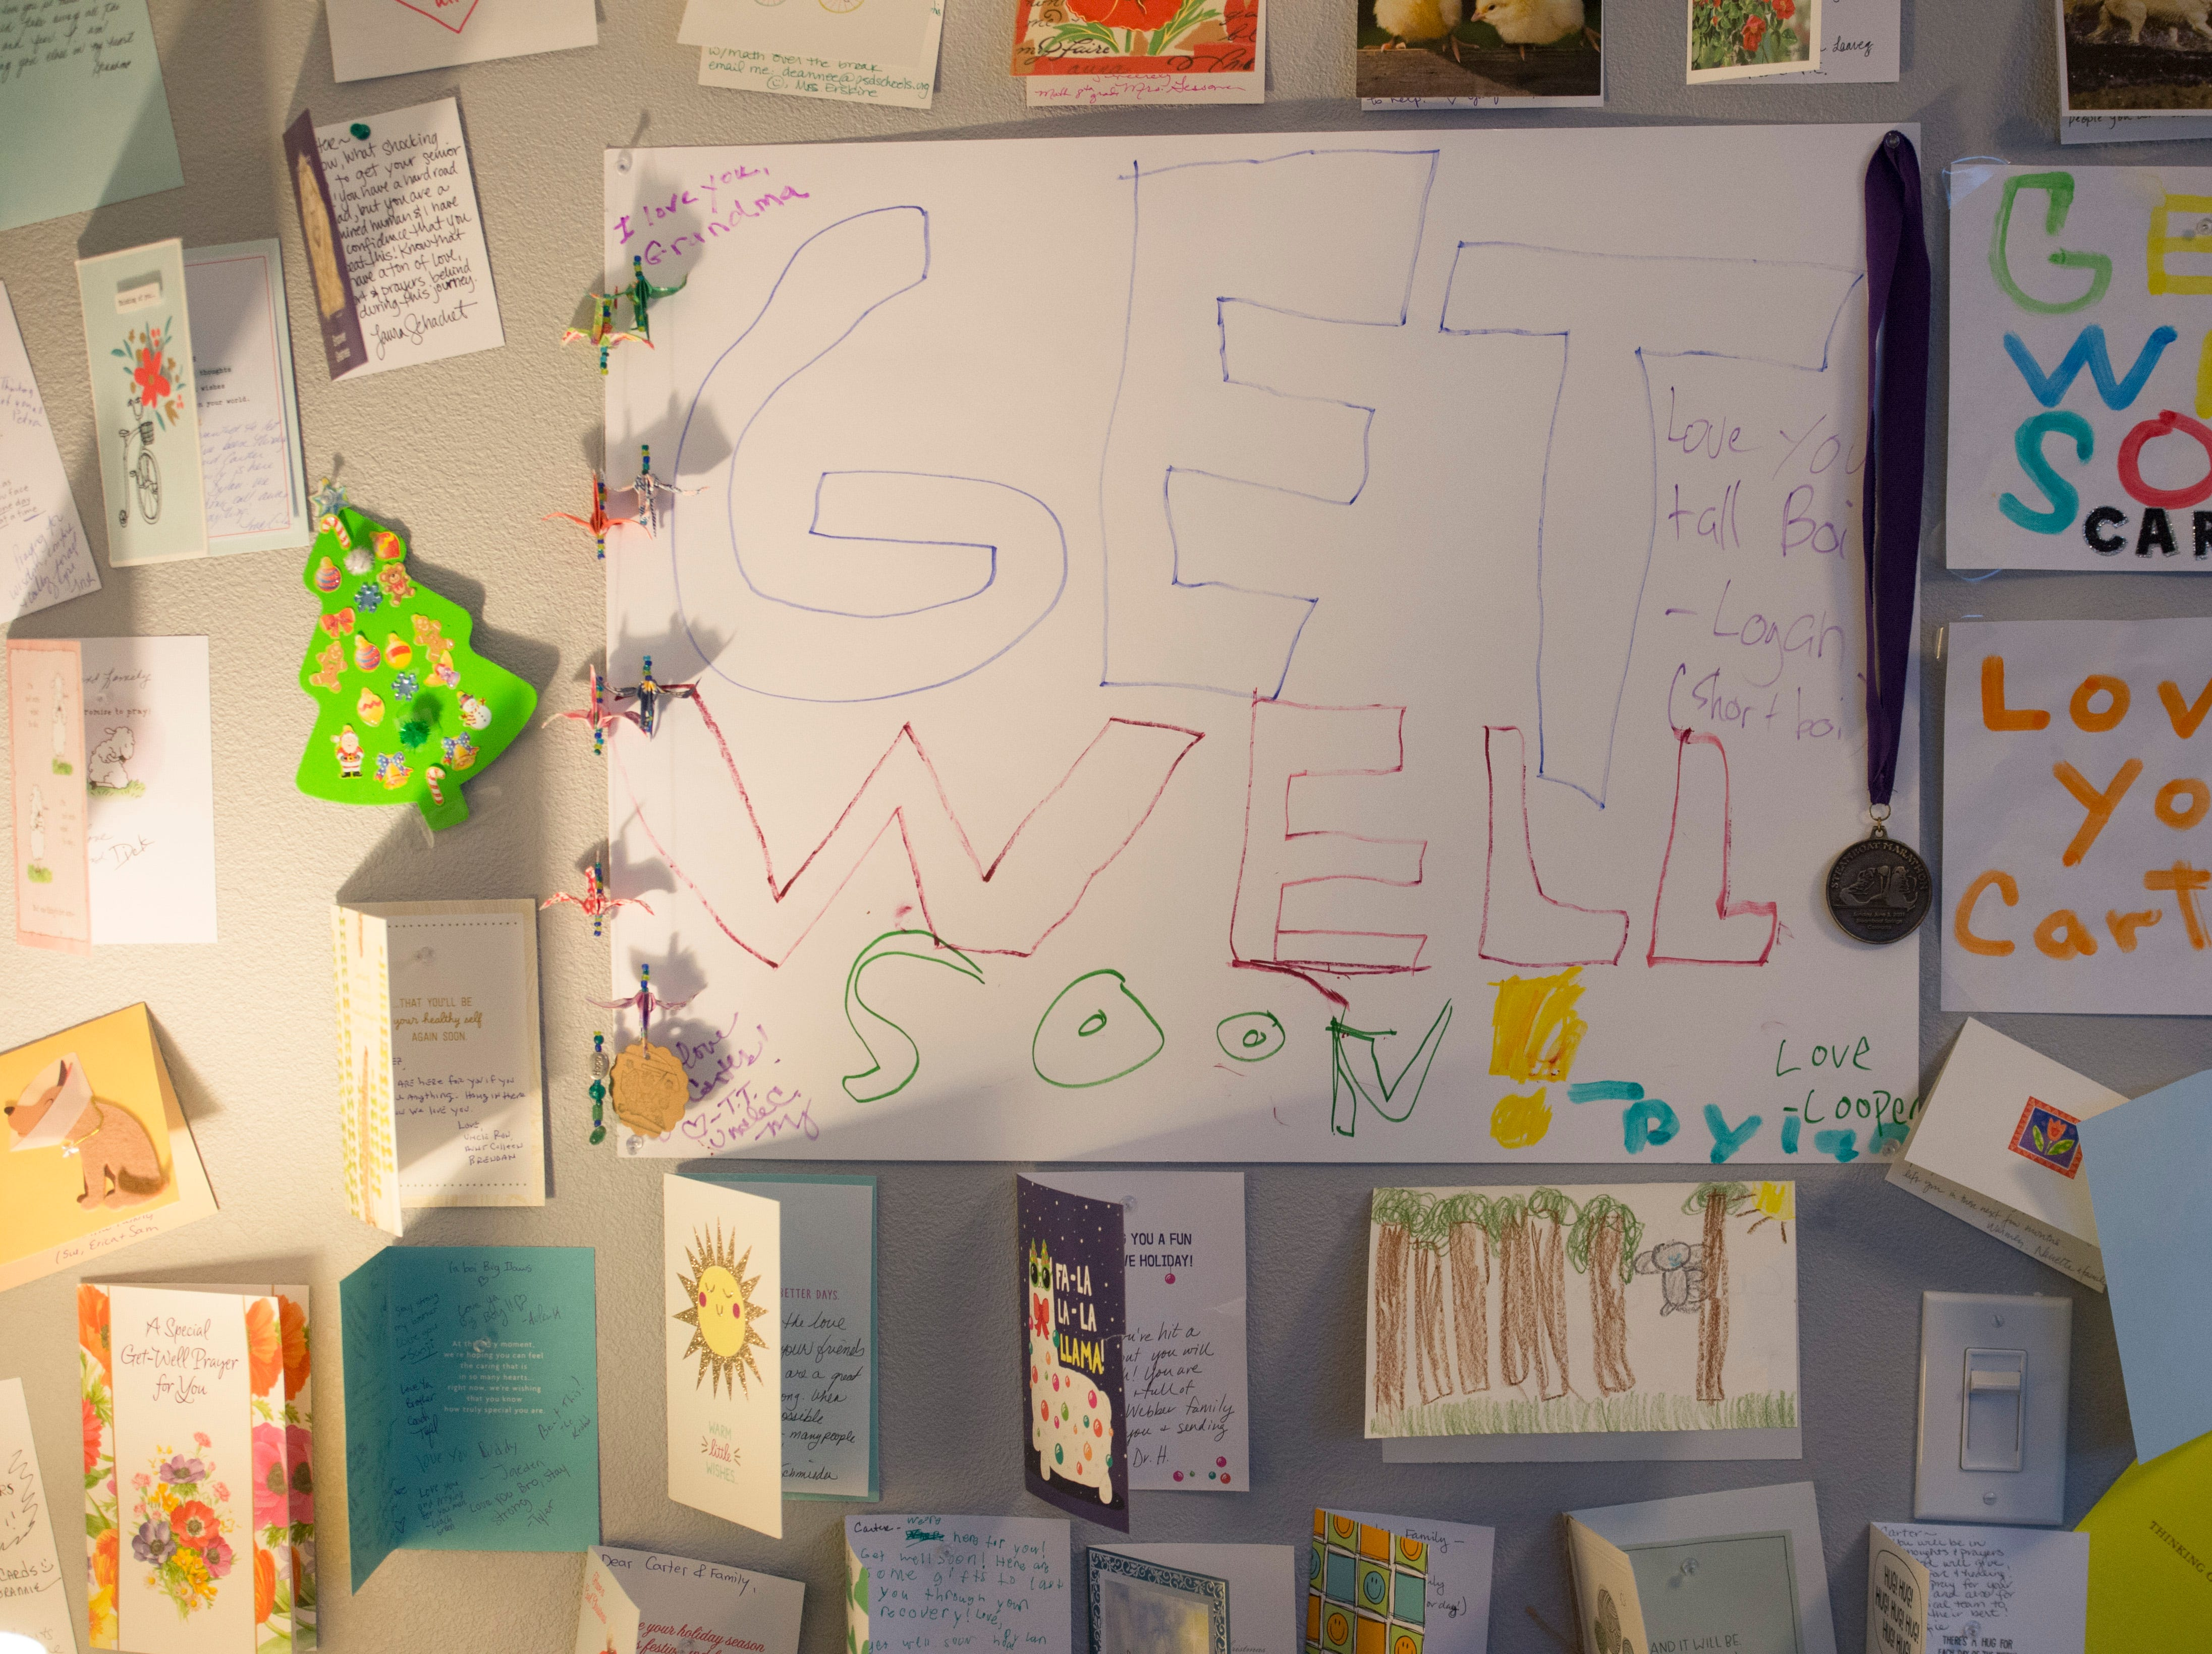 Cards are posted on the wall in the room of Carter Edgerley, 17, at his home in Fort Collins on Tuesday, January 8, 2019. Edgerley, a senior at Rocky Mountain High School was diagnosed with cancer in December.